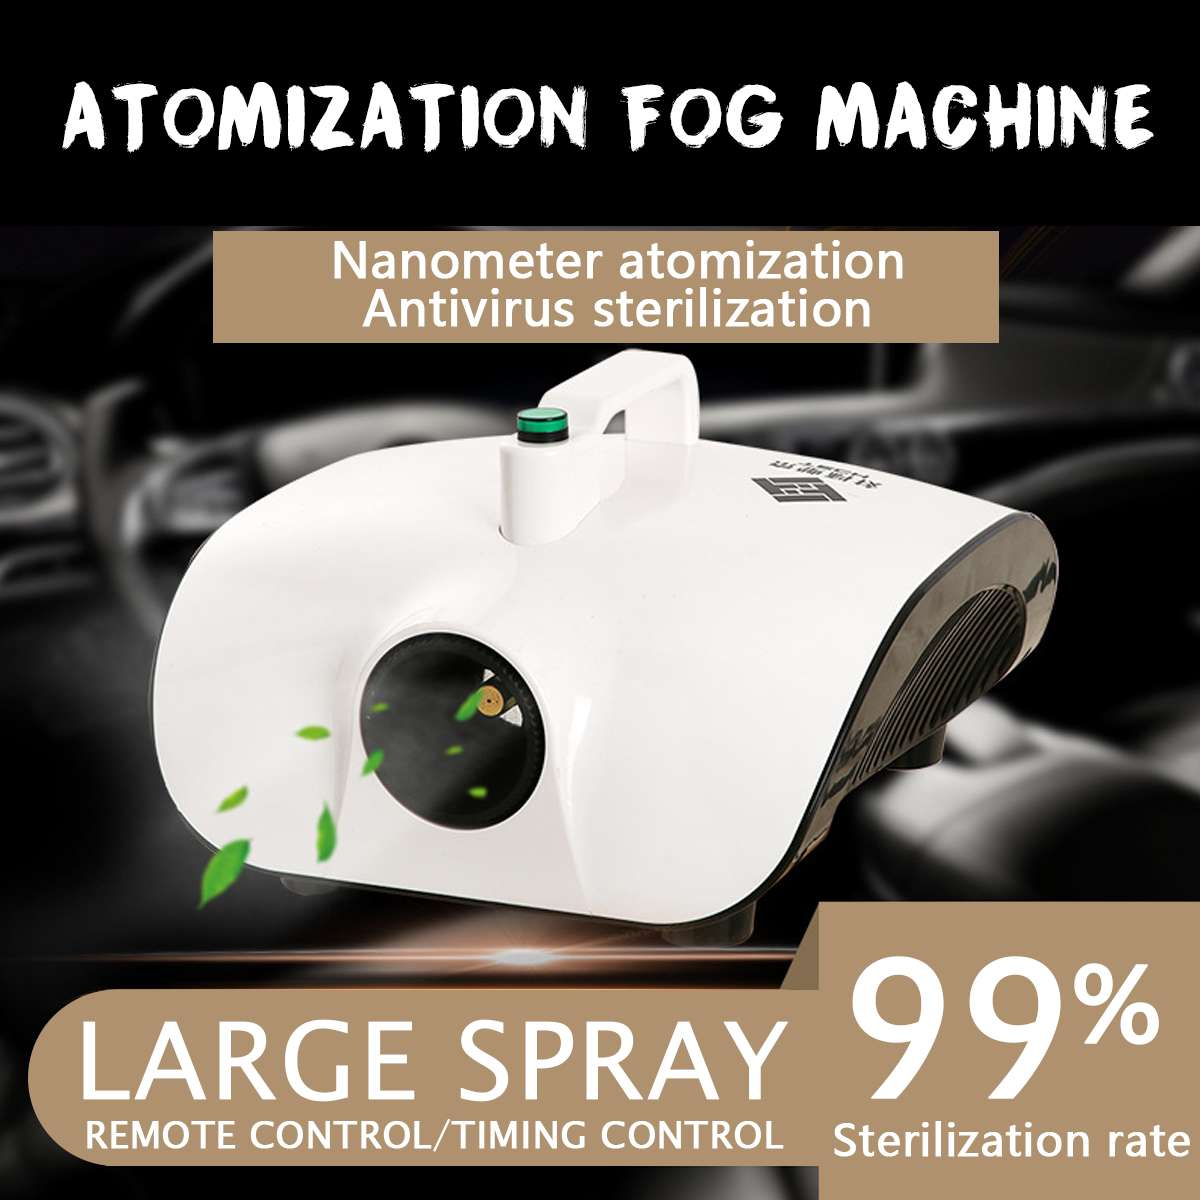 100ml Atomization Machine Deodorant Sterilizes The Formaldehyde Fog Machine Atomizing Bacteria For Indoor Car Home Room